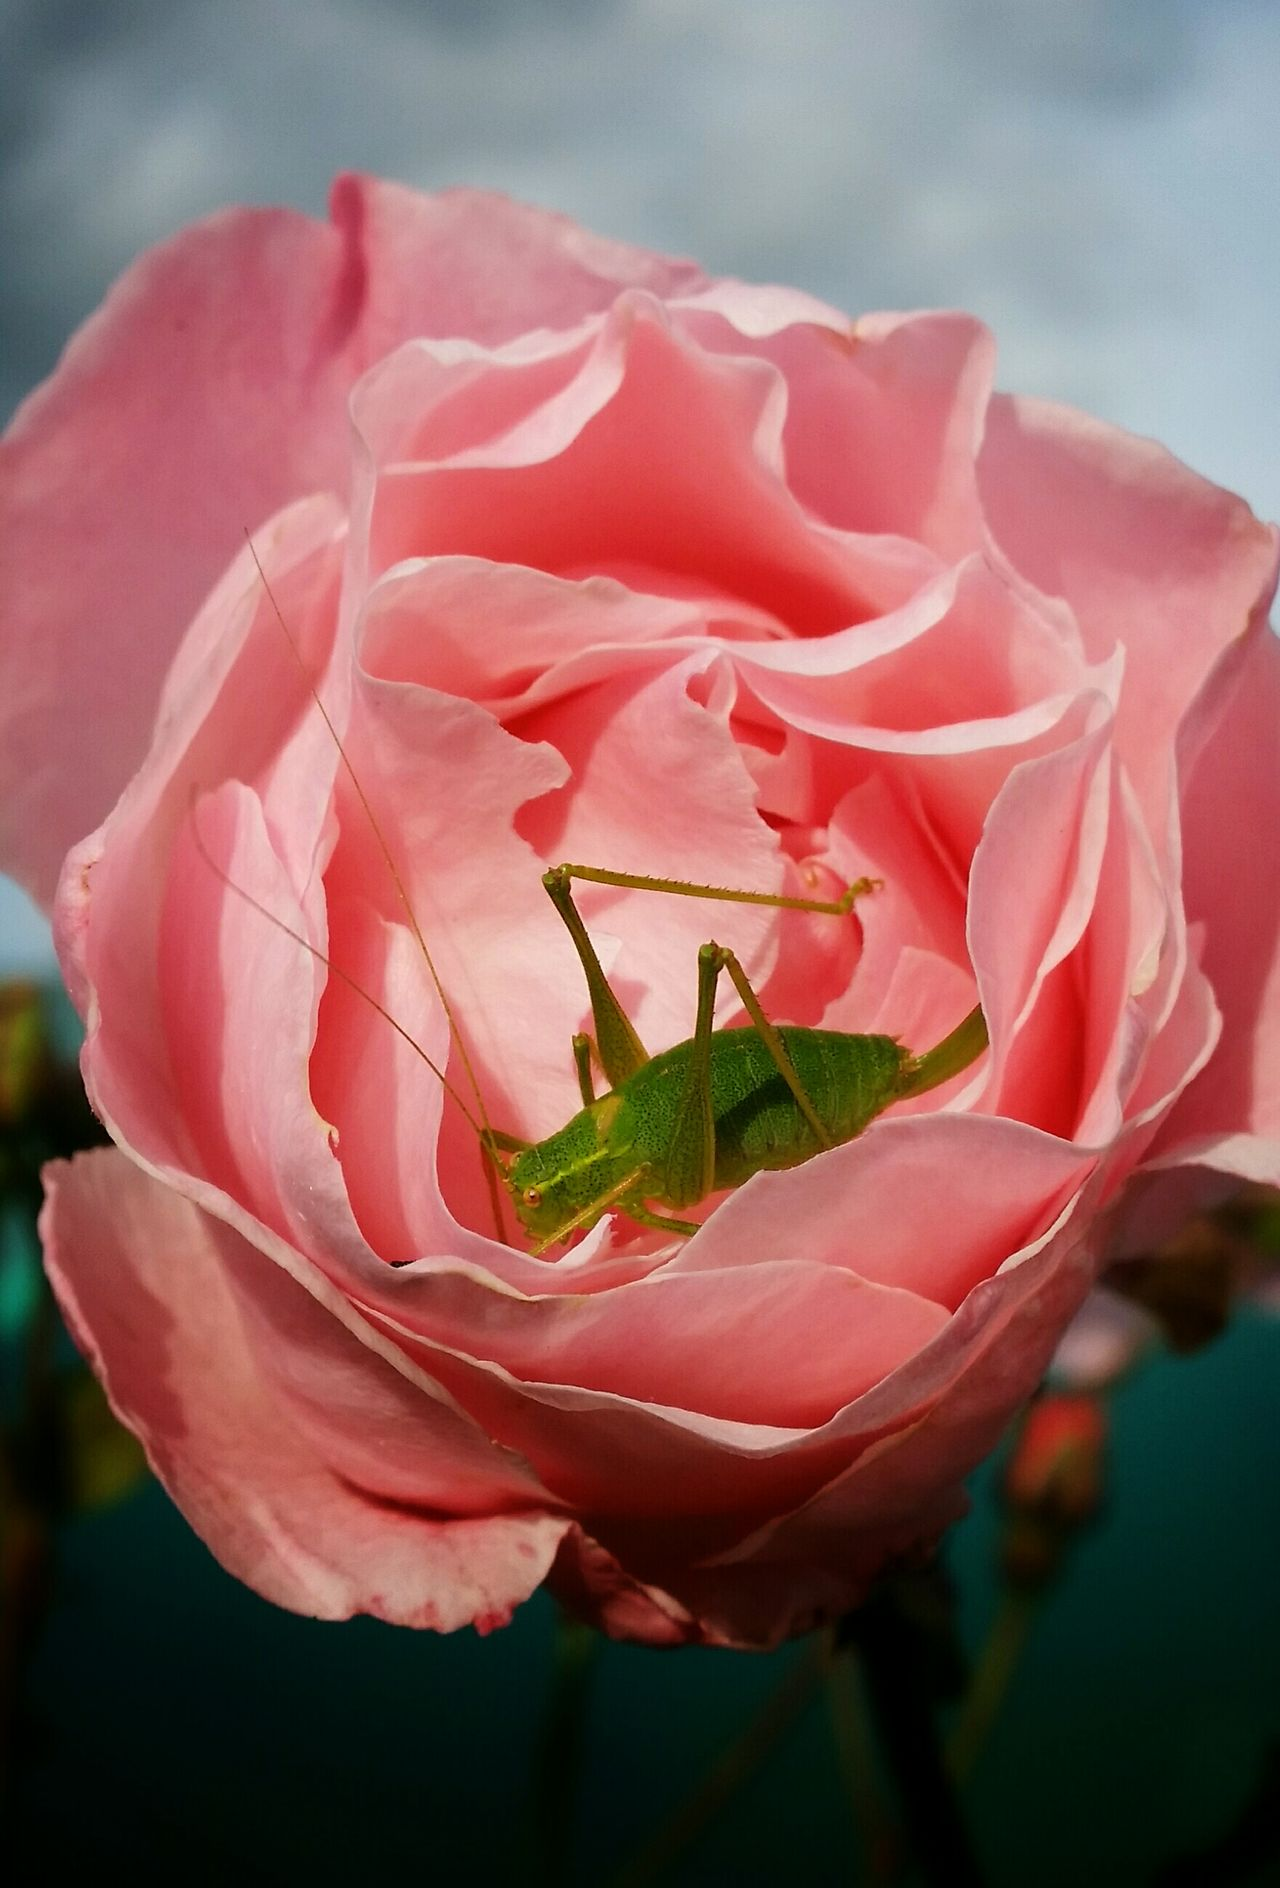 'Beauty and the Wee Beastie' Rose🌹 Crickets EyeEm Nature Lover Flowerporn Flower Collection Tadaa Community Insect Photography Natural Pastel Colors Pastel Power Pastel